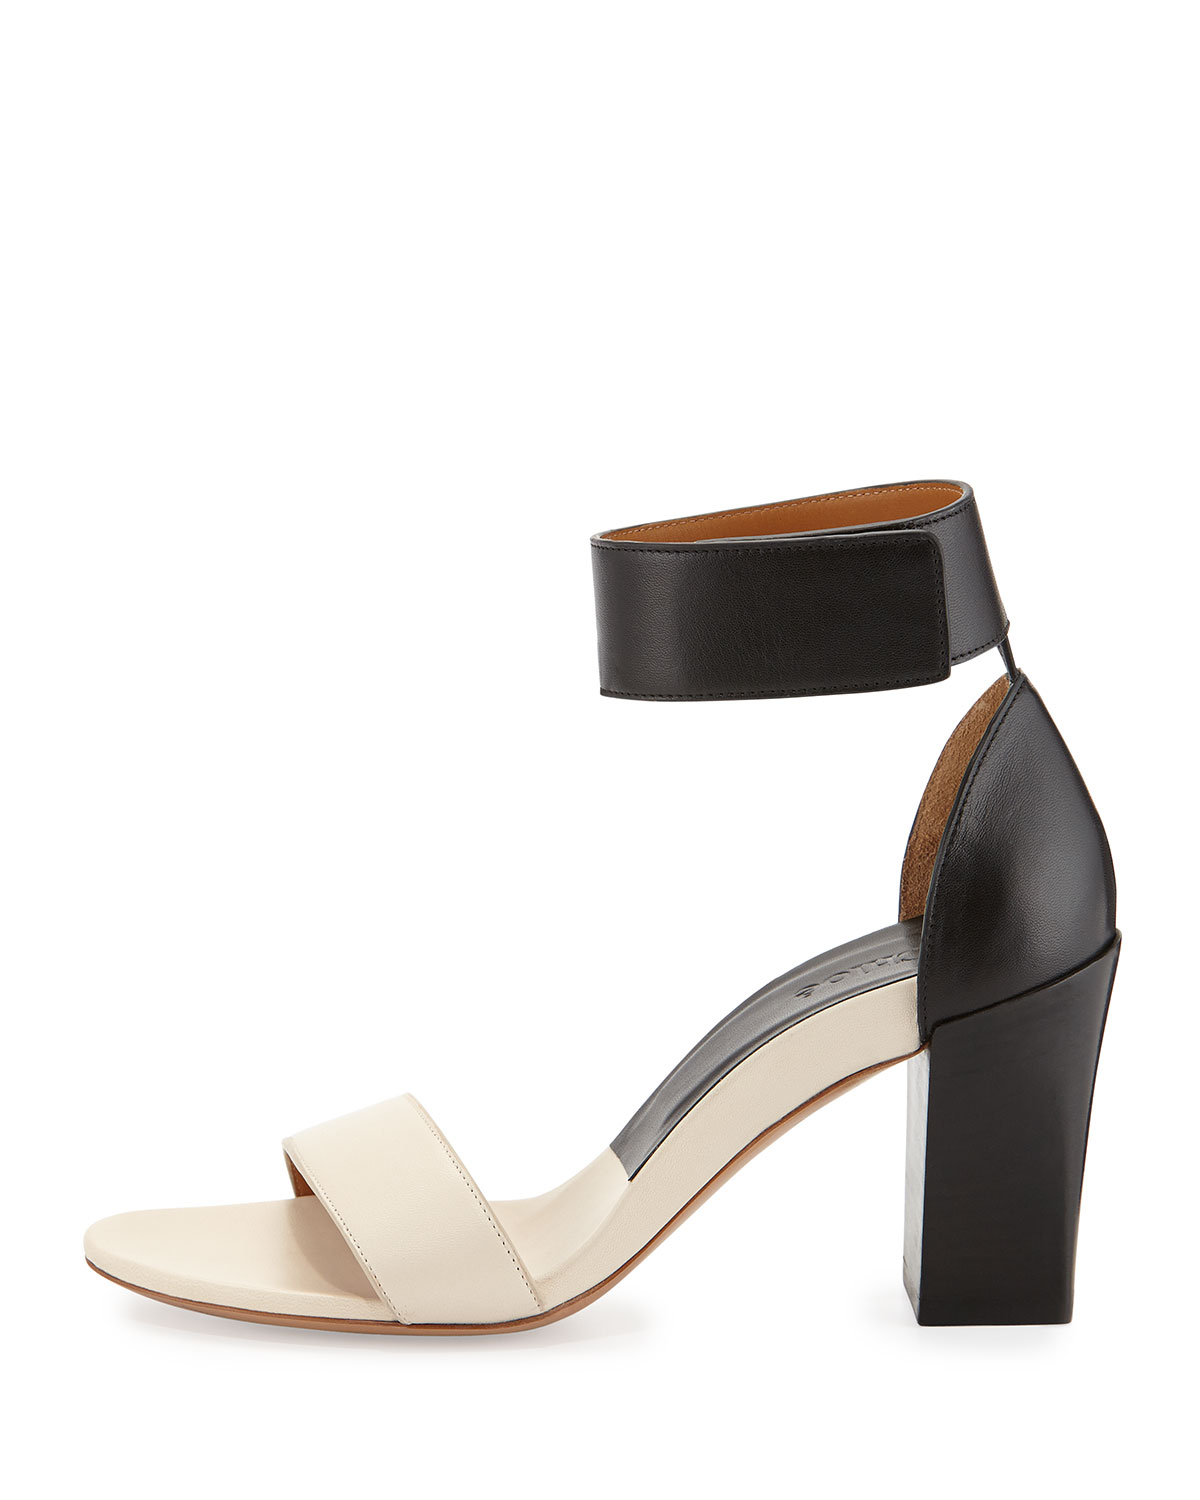 white sole strappy mid-heel sandals - Brown Chloé kMiMl